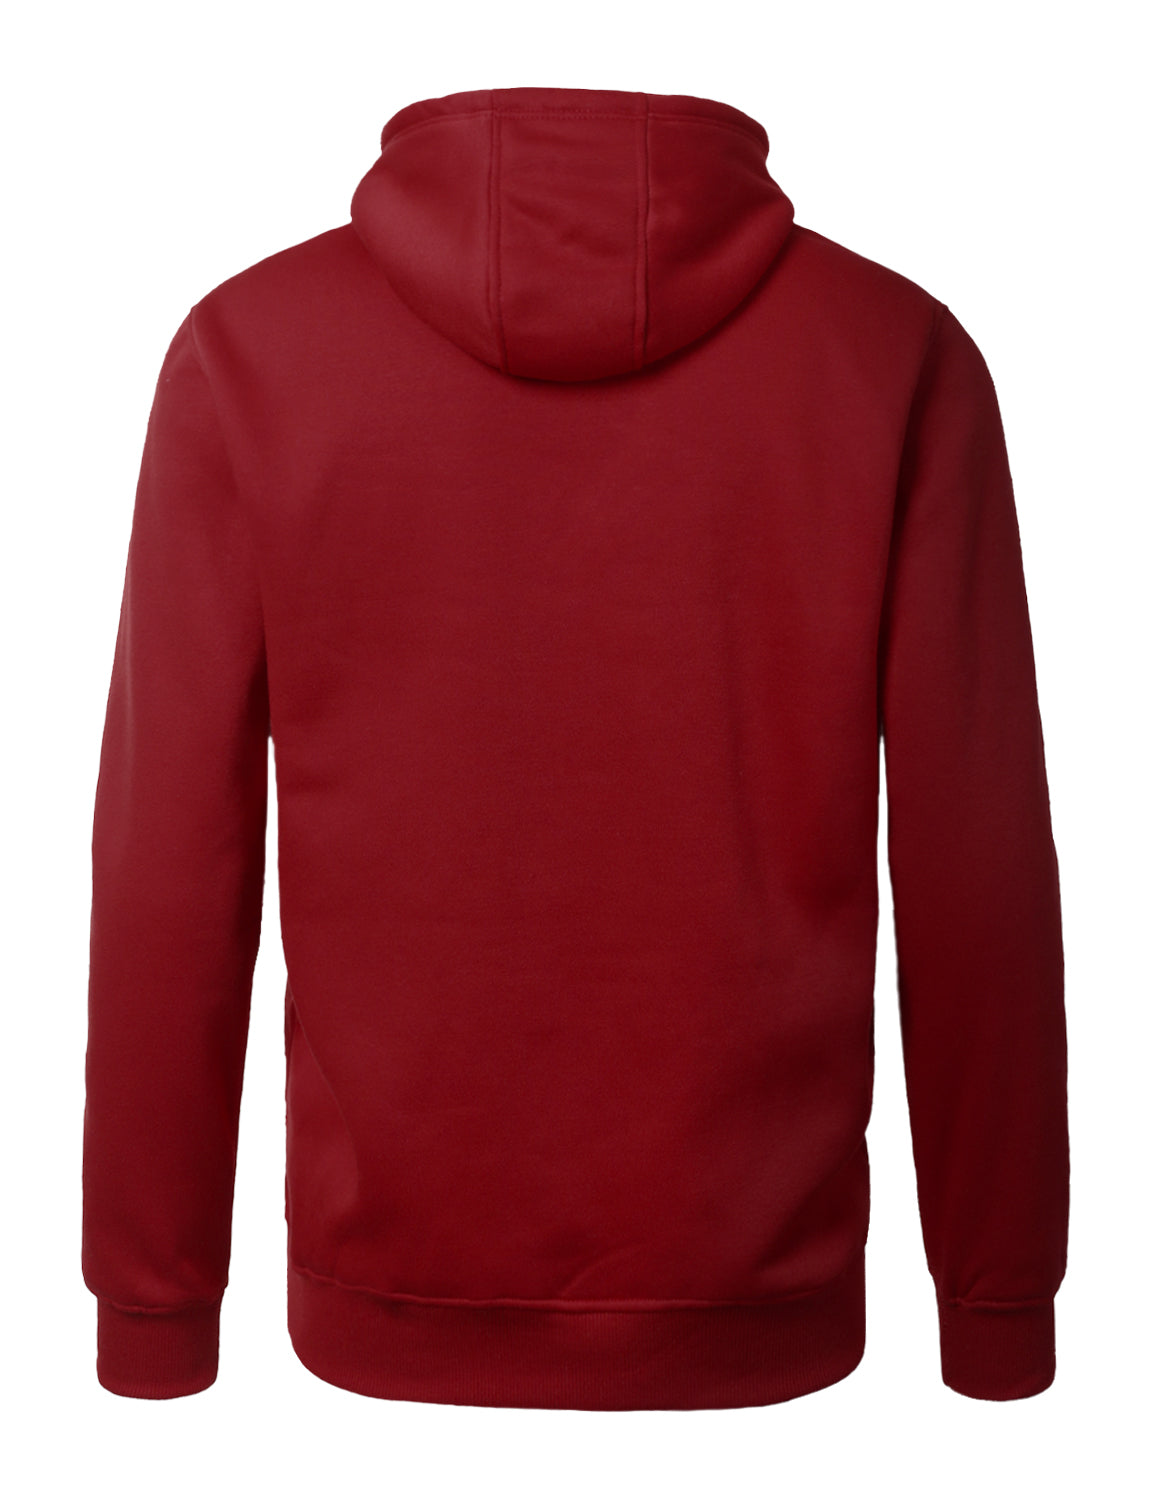 BURGUNDY Lightweight Pullover Fleece Hoodie - URBANCREWS